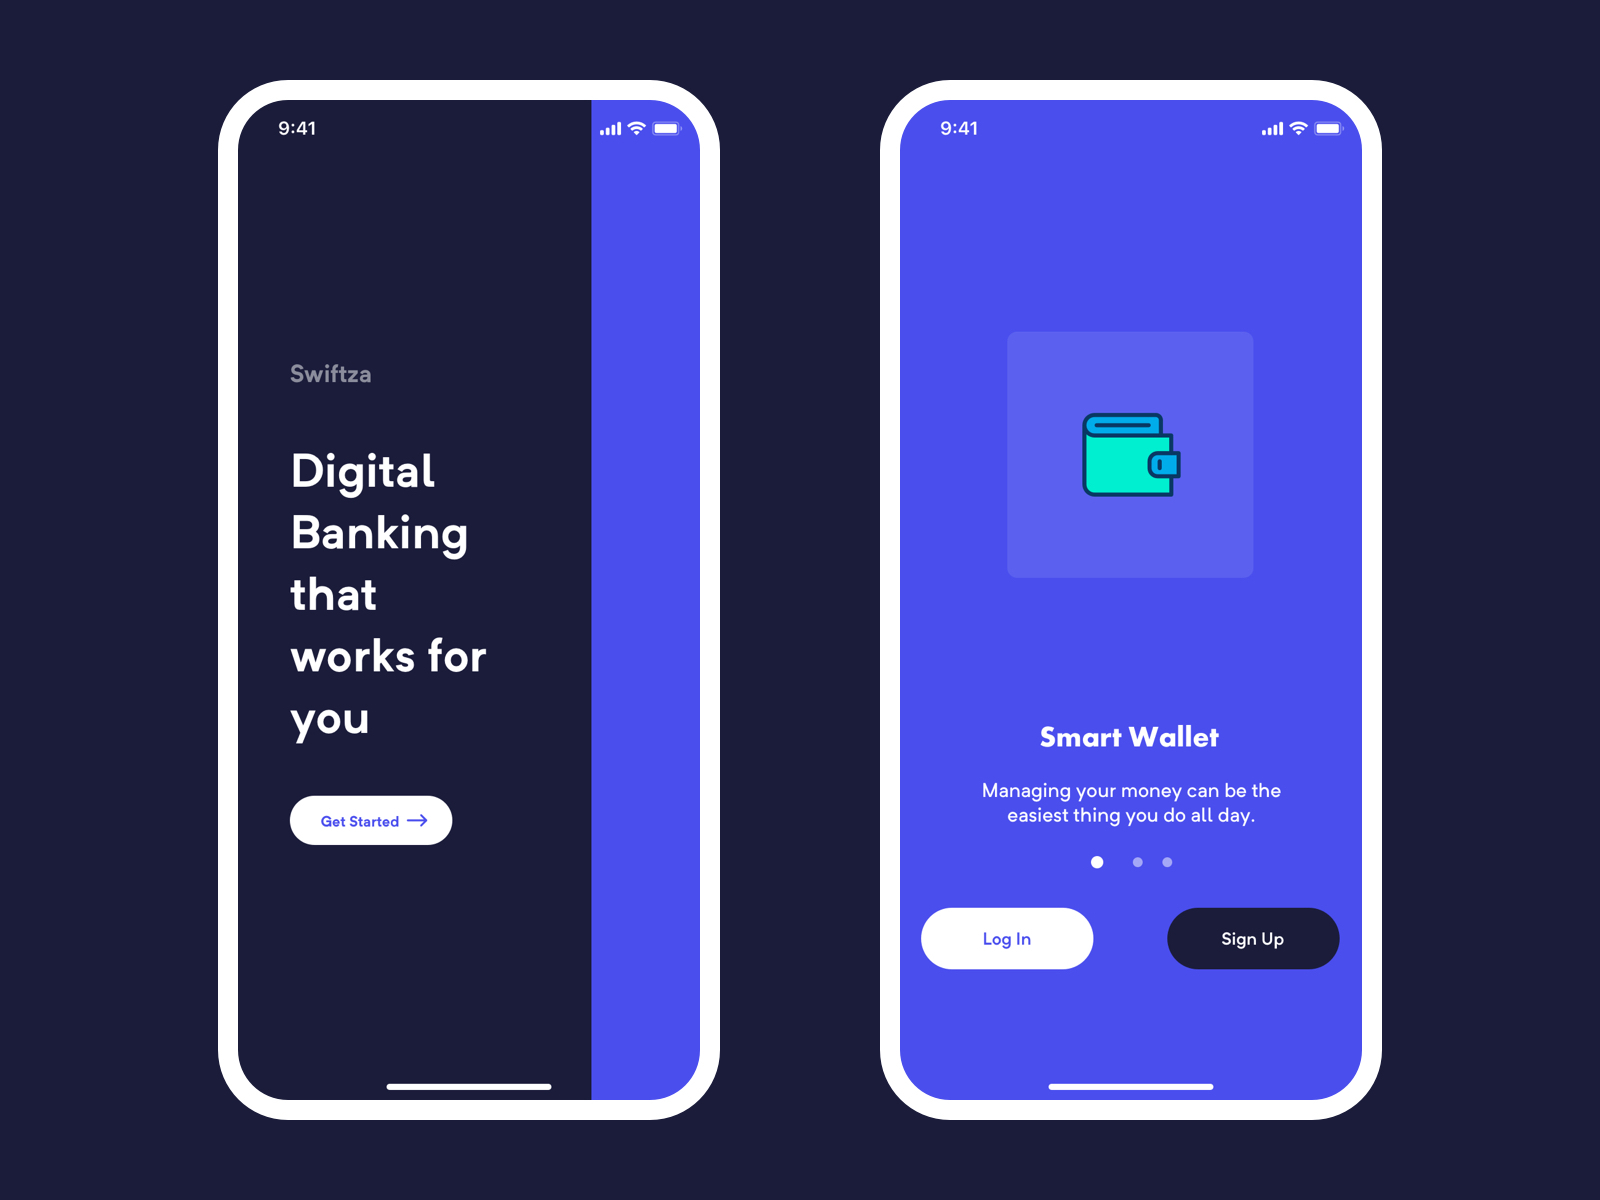 Mobile Bank Onboarding cover image